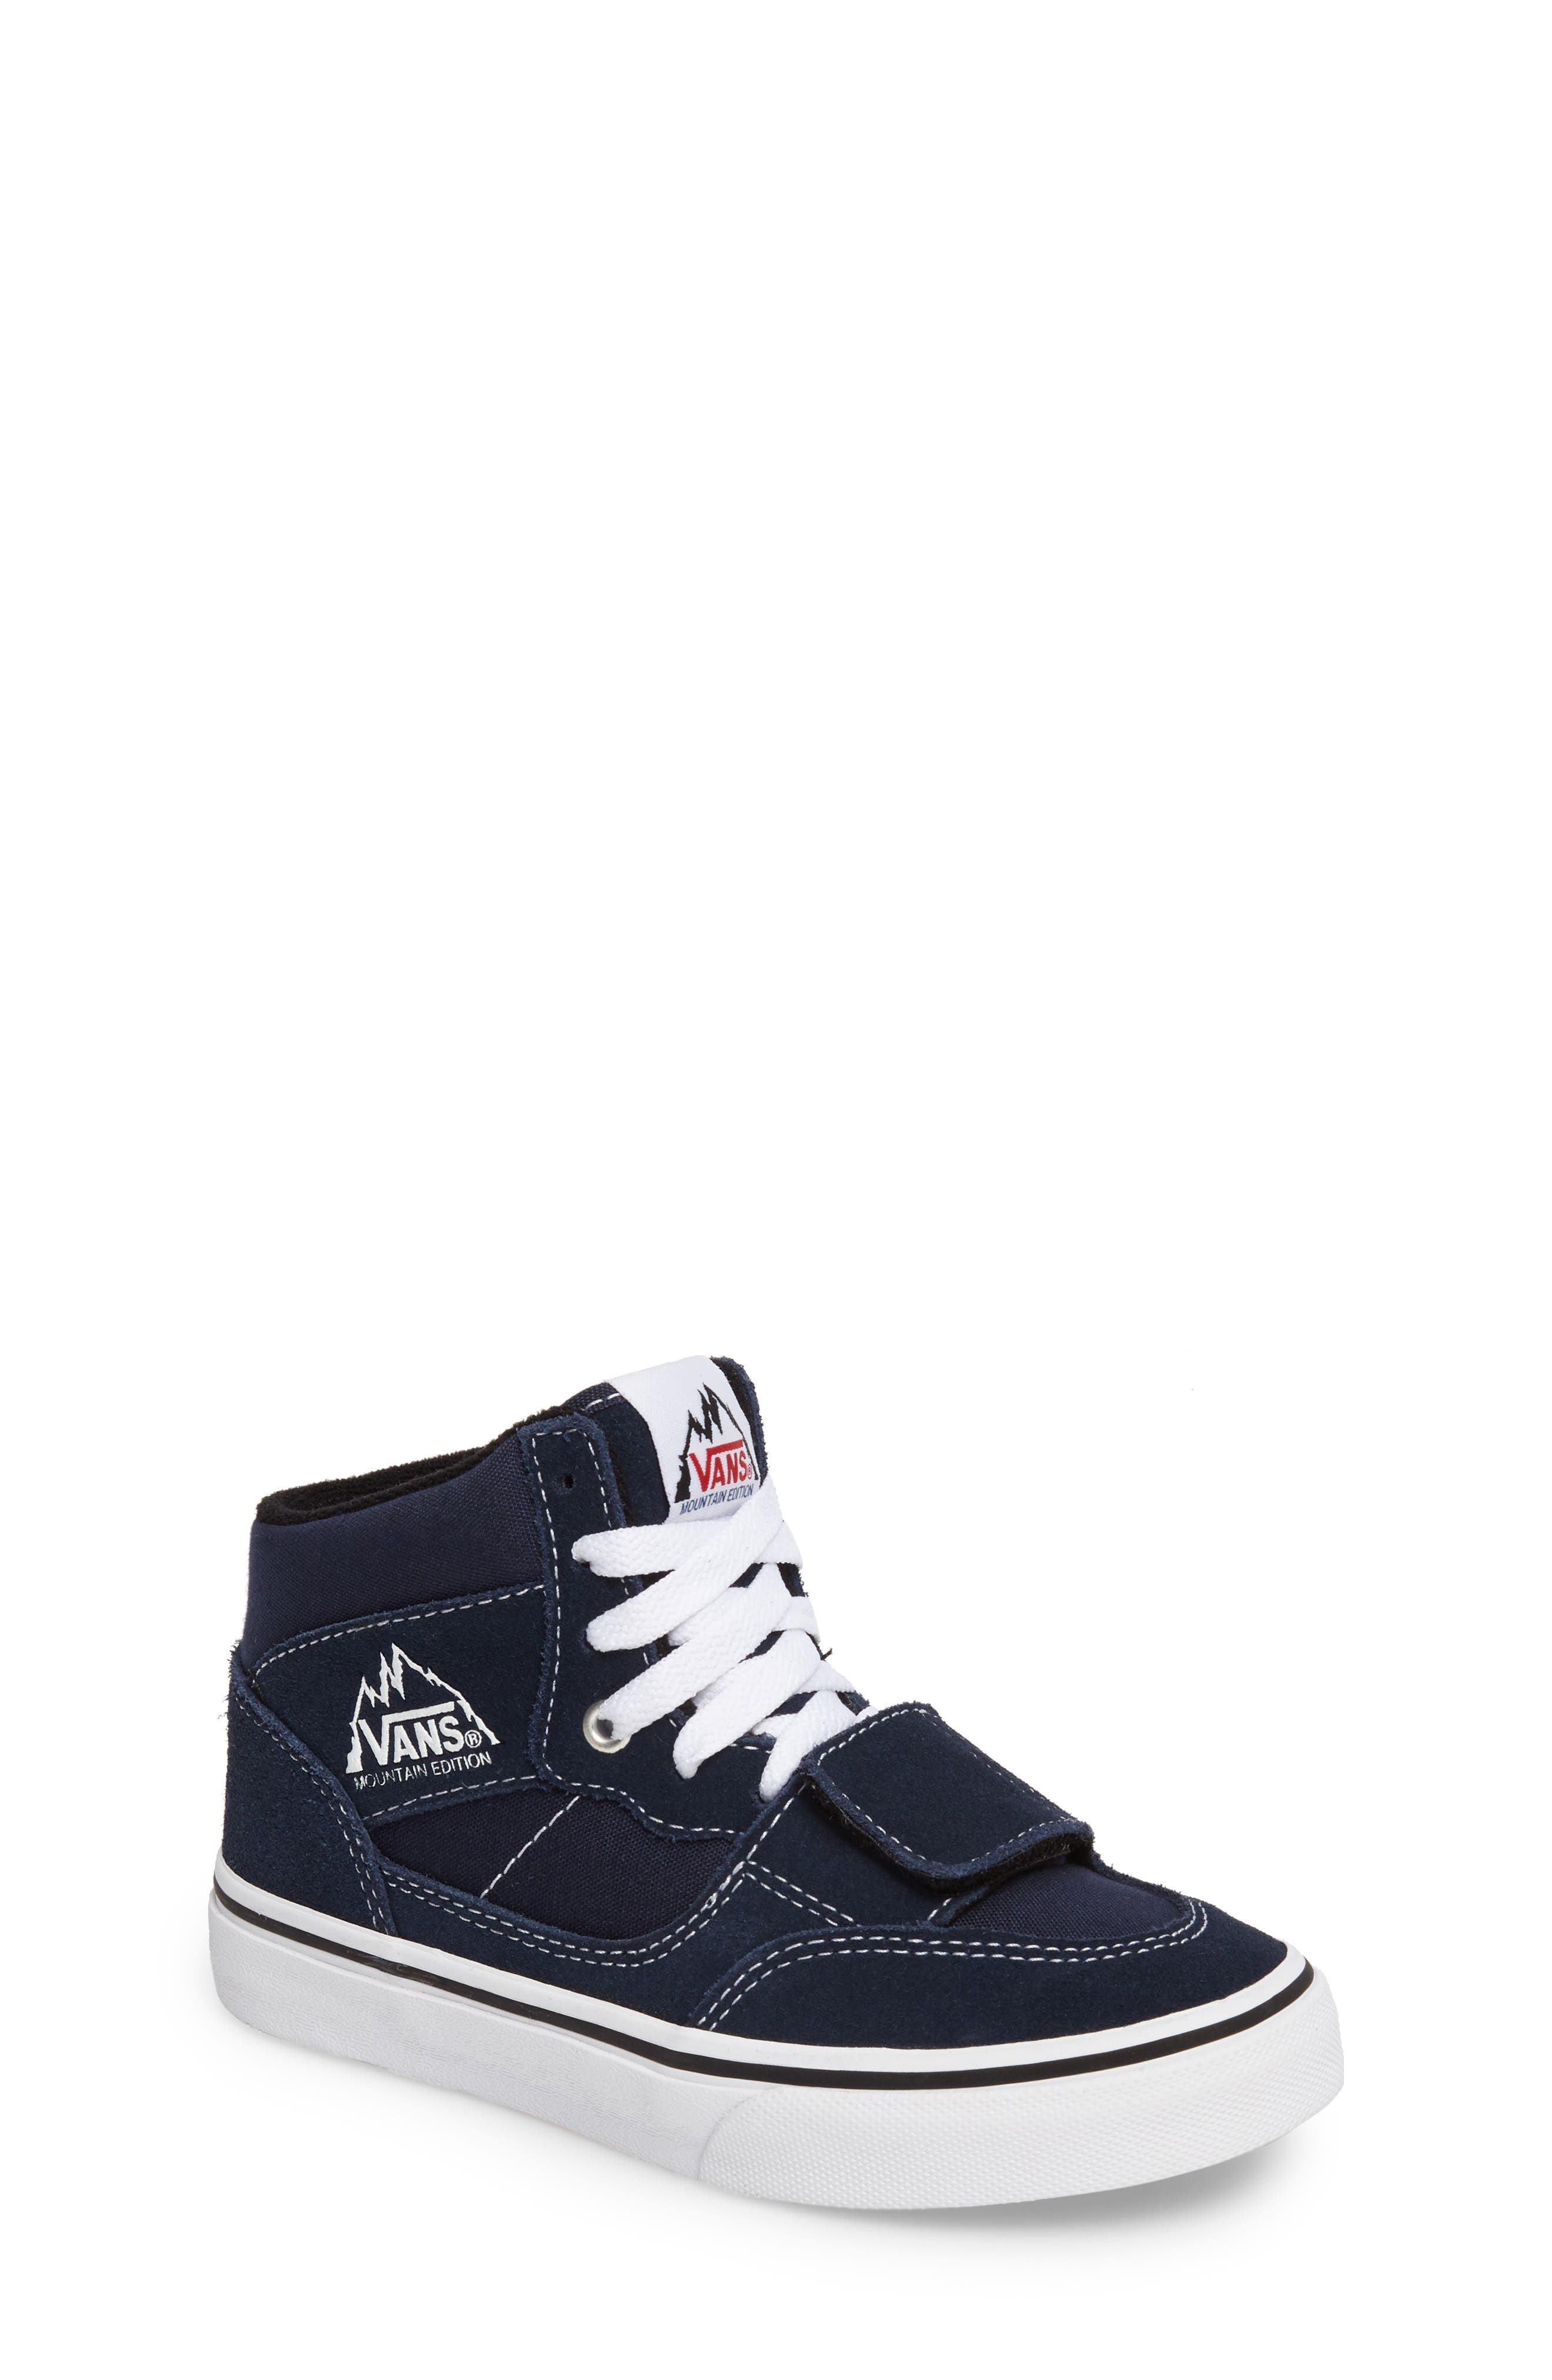 Vans Mountain Edition Mid Top Sneaker (Baby, Walker, Toddler, Little Kid & Big Kid)